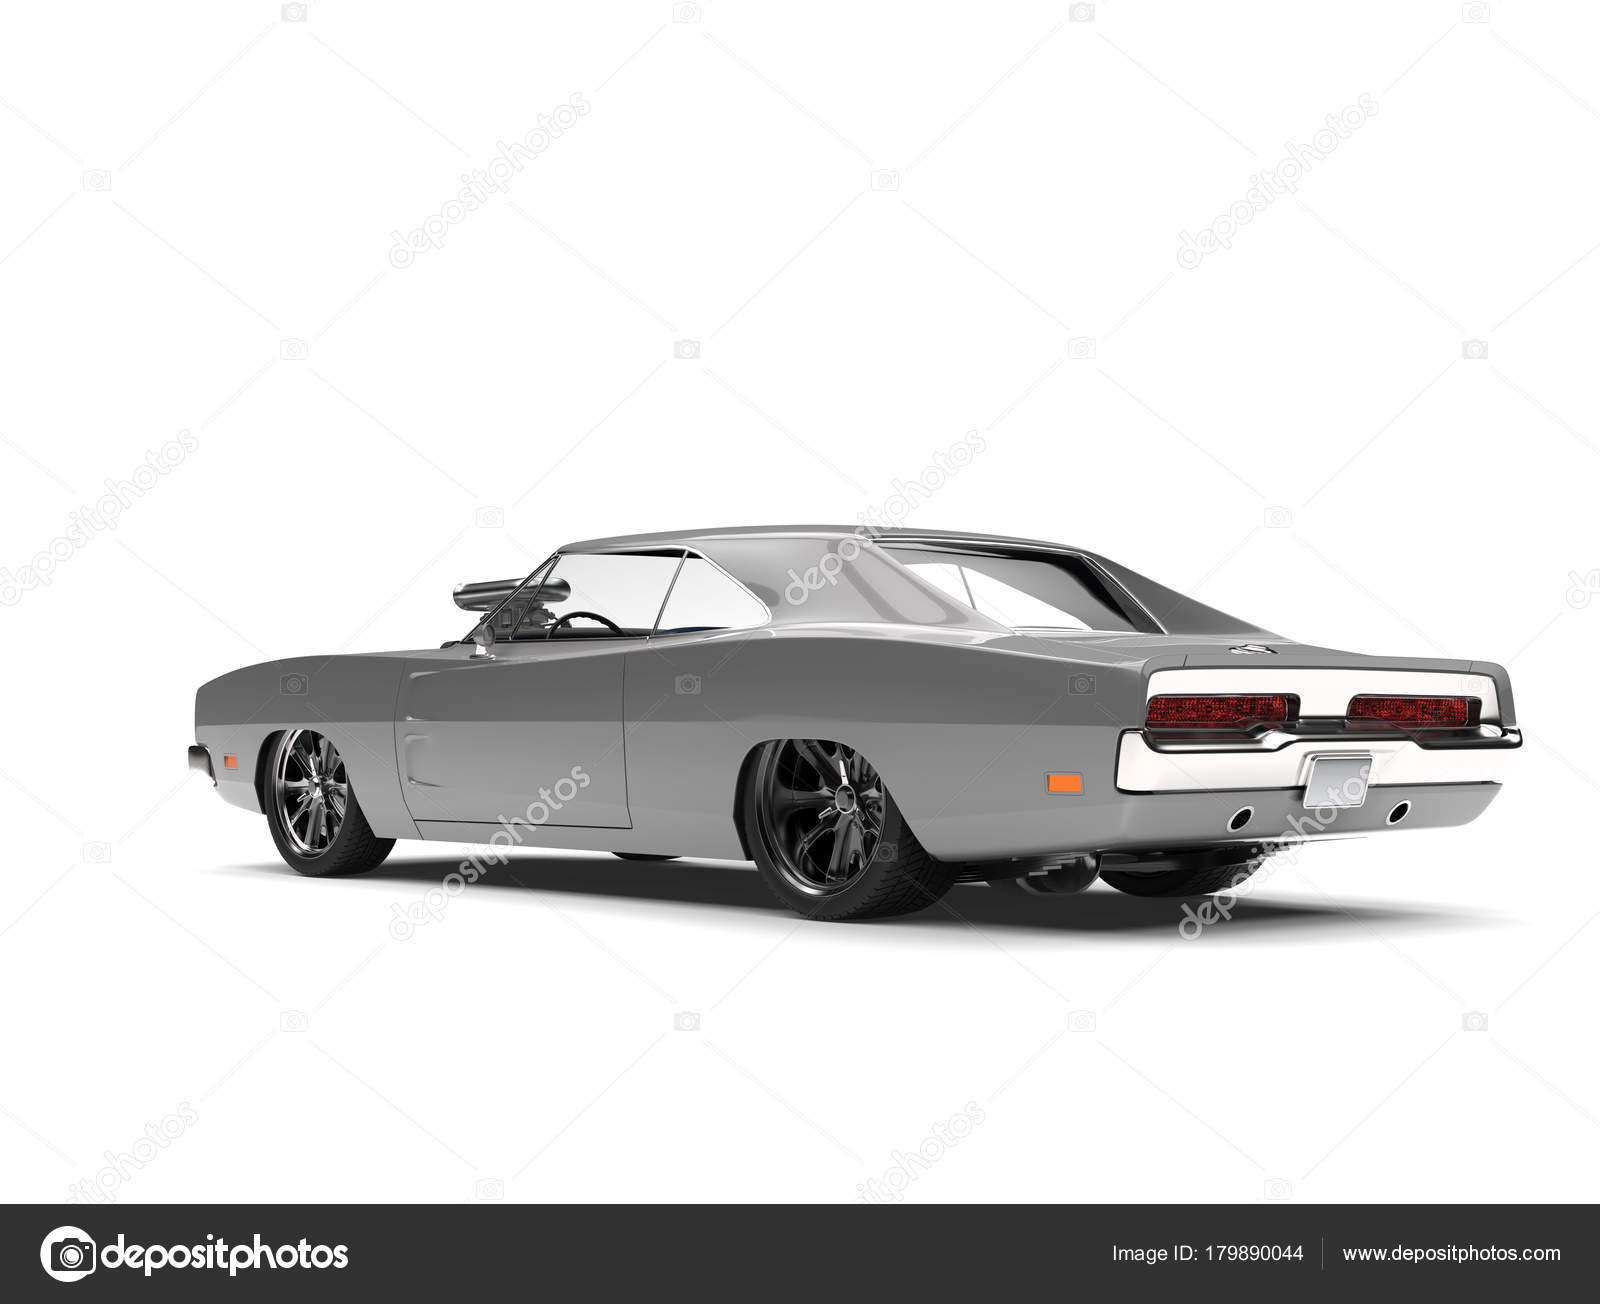 Cool Vintage Silver American Muscle Car Rear View Stock Photo